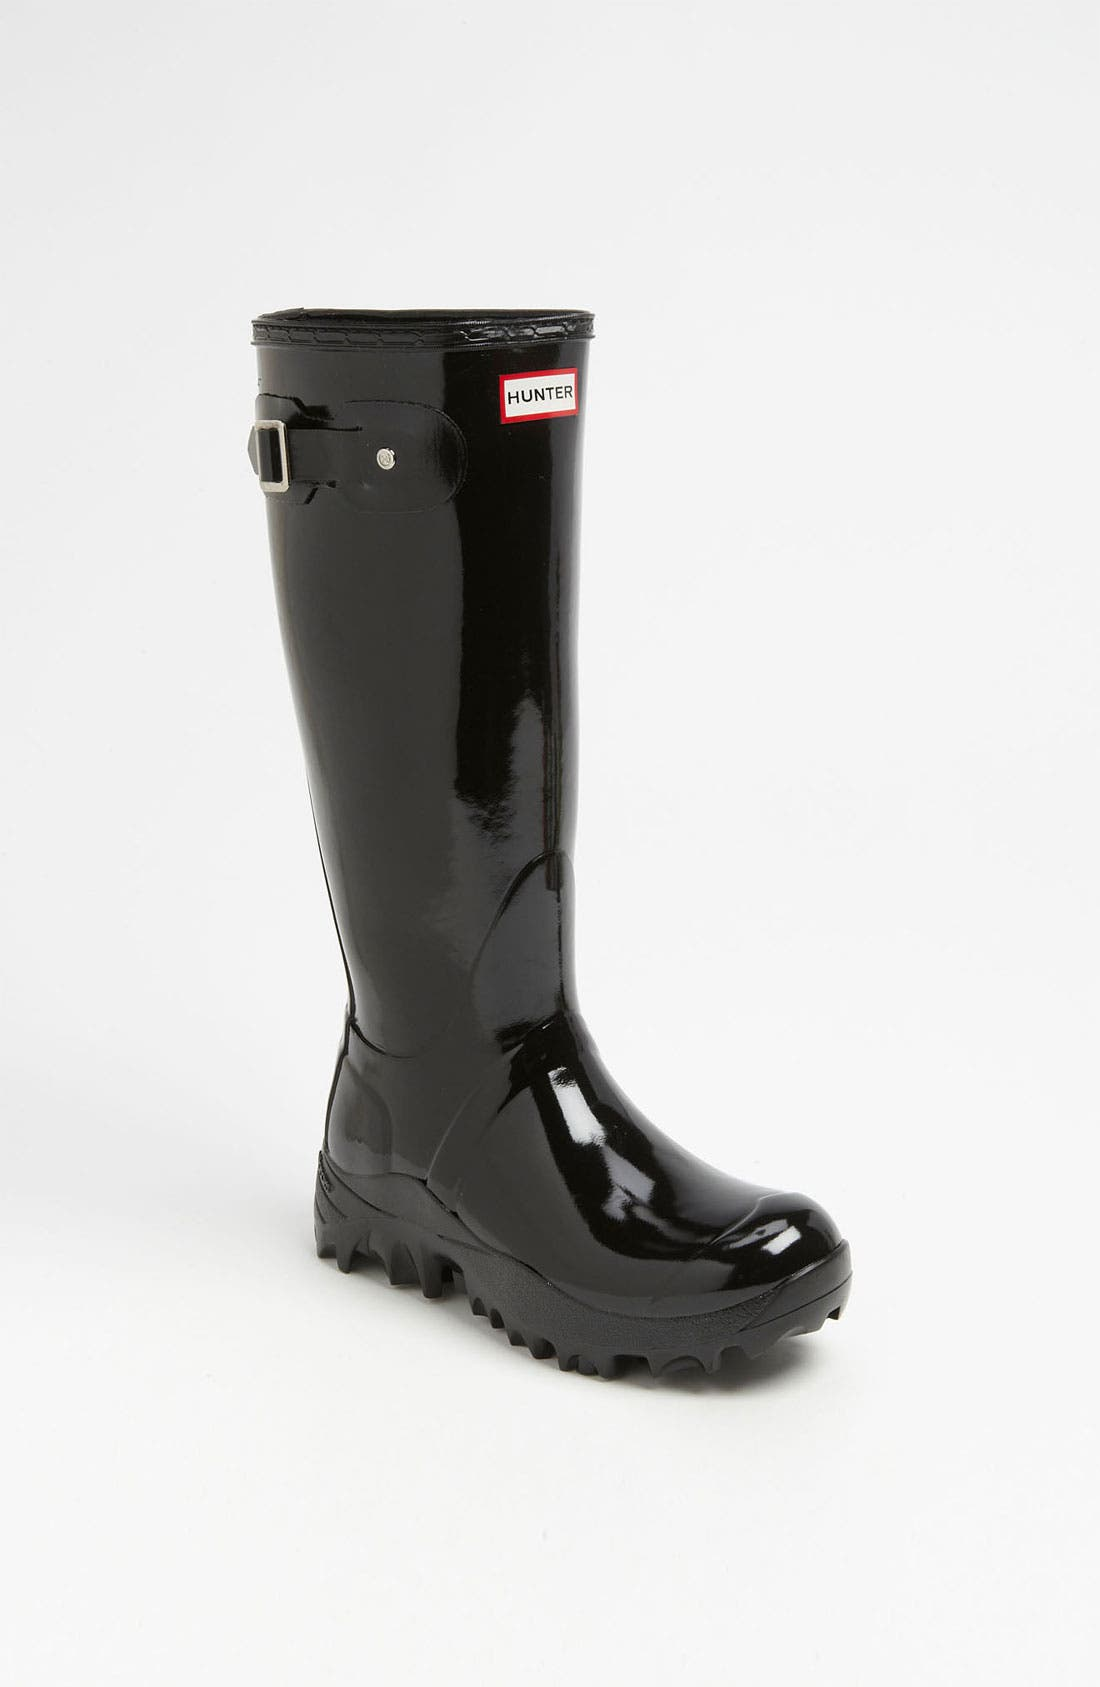 Alternate Image 1 Selected - Hunter 'Snow' Gloss Rain Boot (Women)